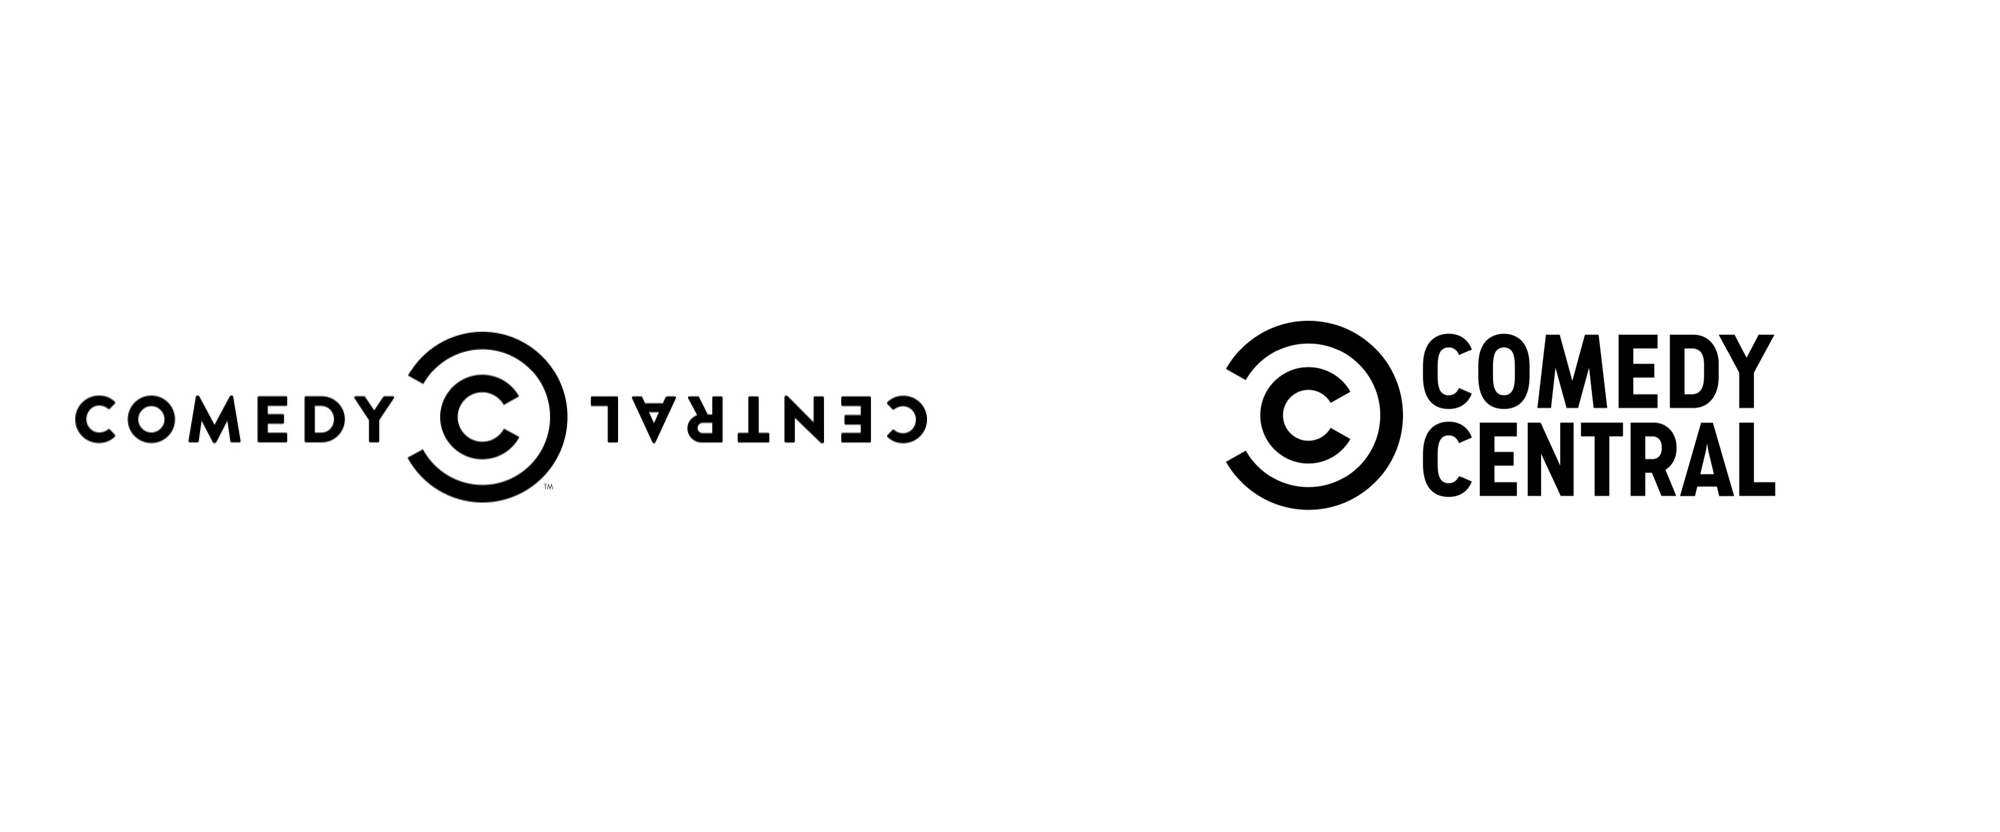 New Logo and On-air Look for Comedy Central by loyalkaspar and In-house